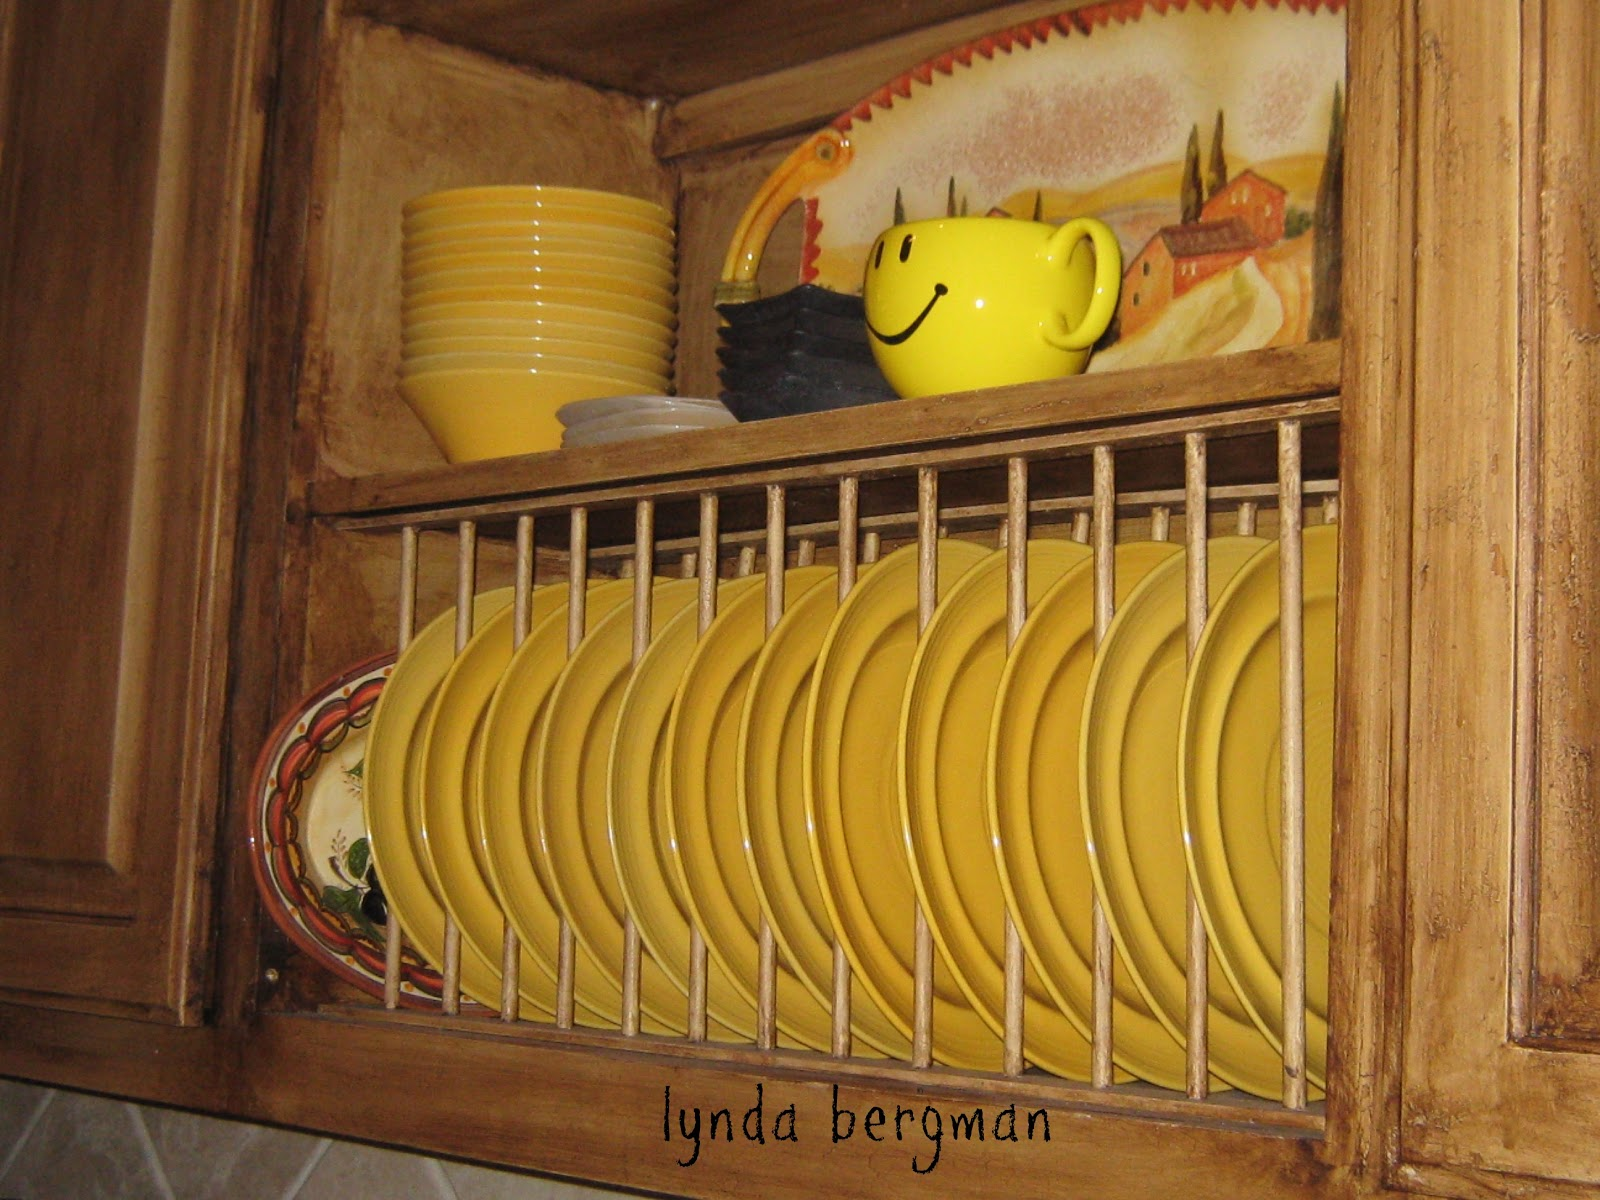 lynda bergman decorative artisan how to build u0026 install a plate